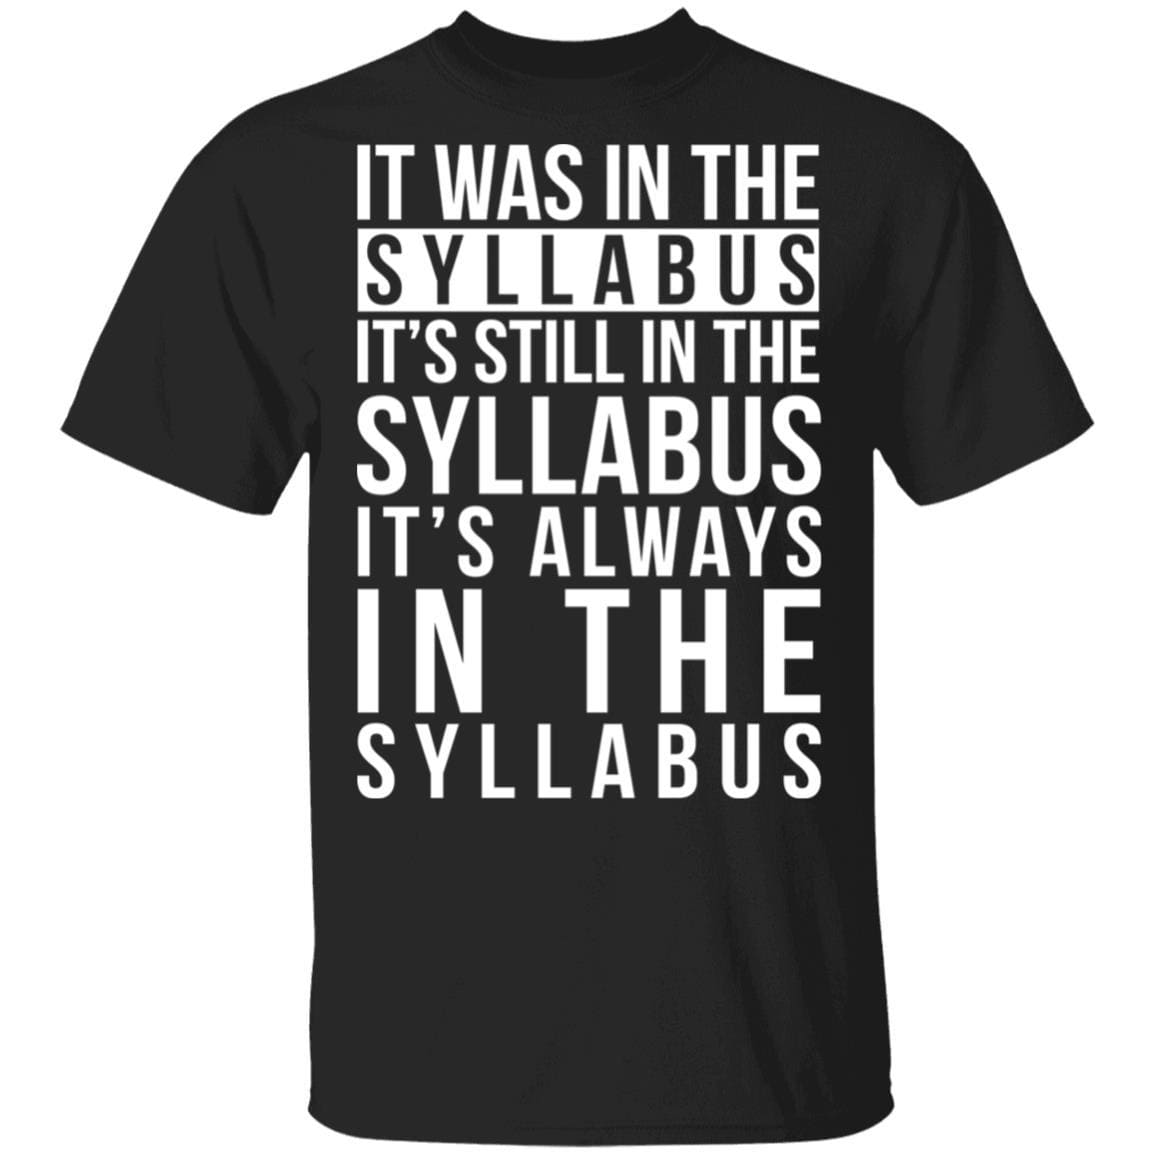 It Was In The Syllabus It's Still In The Syllabus It's Always In The Syllabus T-Shirts, Hoodies 1049-9953-88445036-48144 - Tee Ript